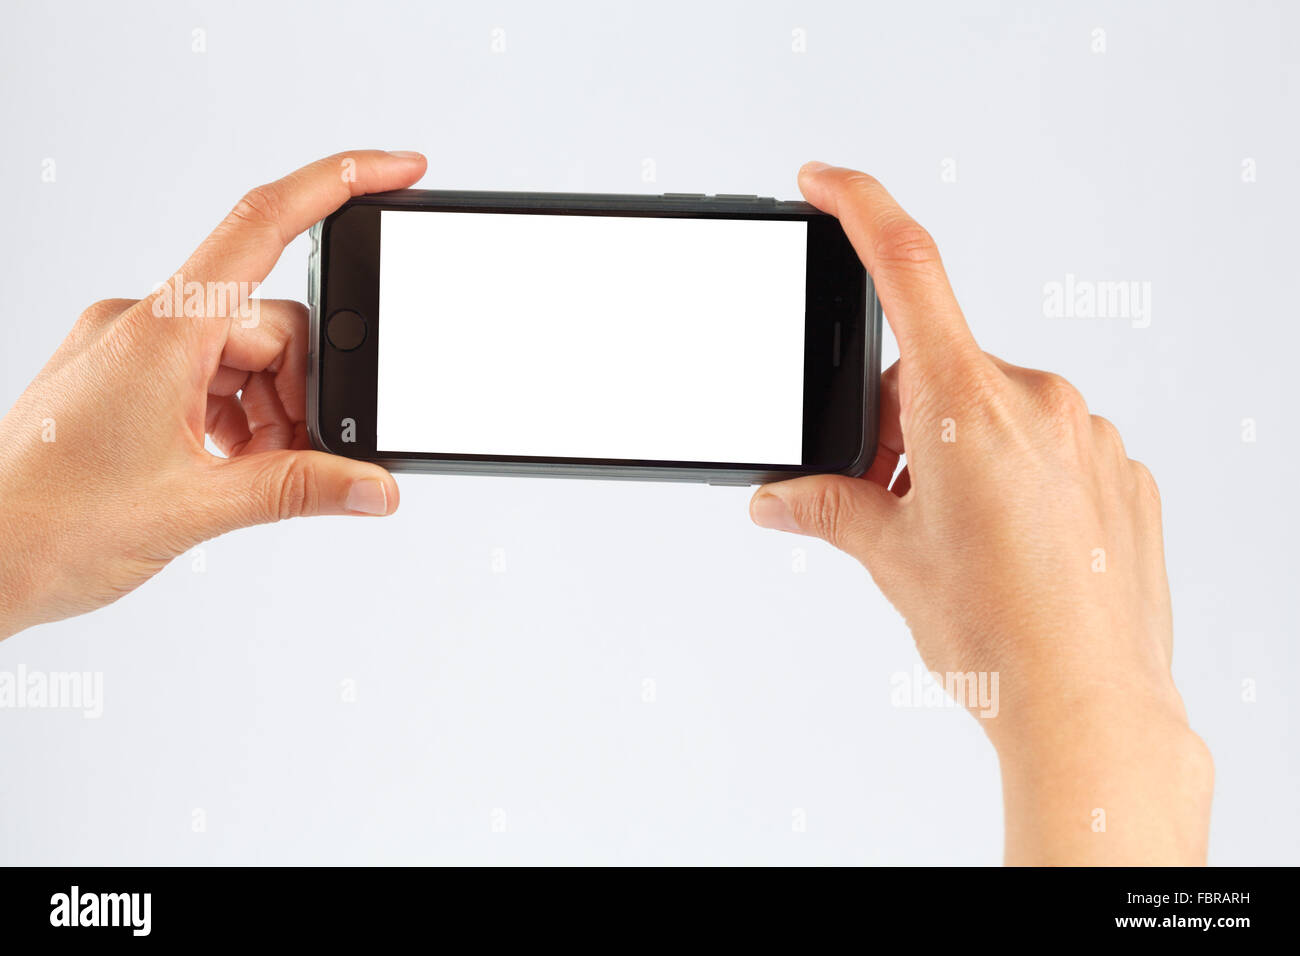 Female hands holding mobile phone in horizontal orientation. Isolated on white with white screen. - Stock Image